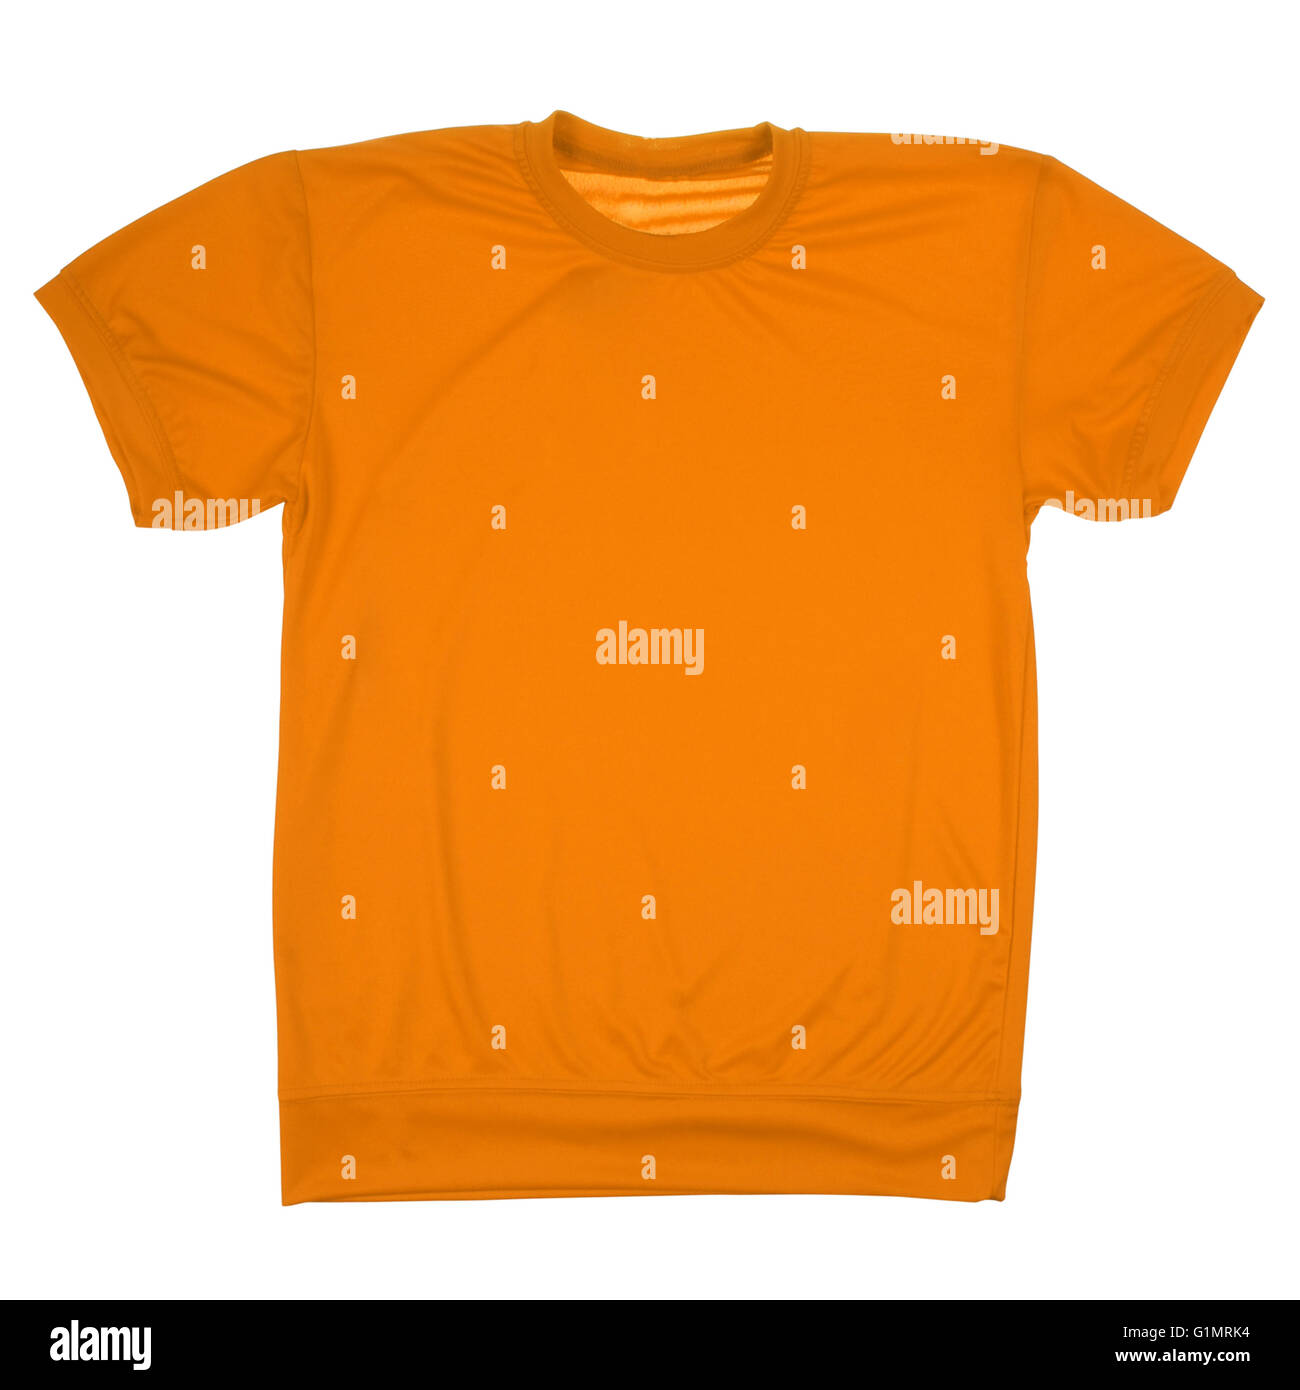 aa6de7399 Orange blank t-shirt isolated on white. Clipping path inside. Ready for  your logo or artwork.